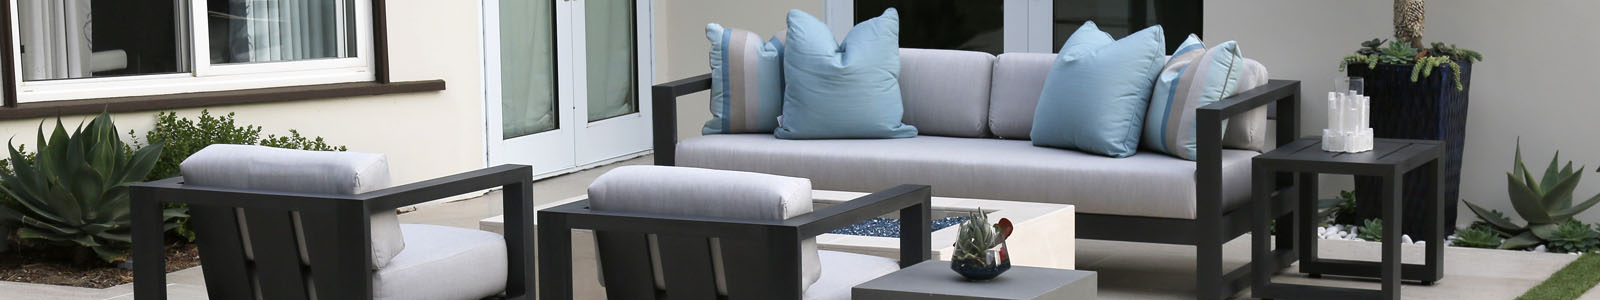 Sunset West Outdoor Patio Furniture At Patioliving